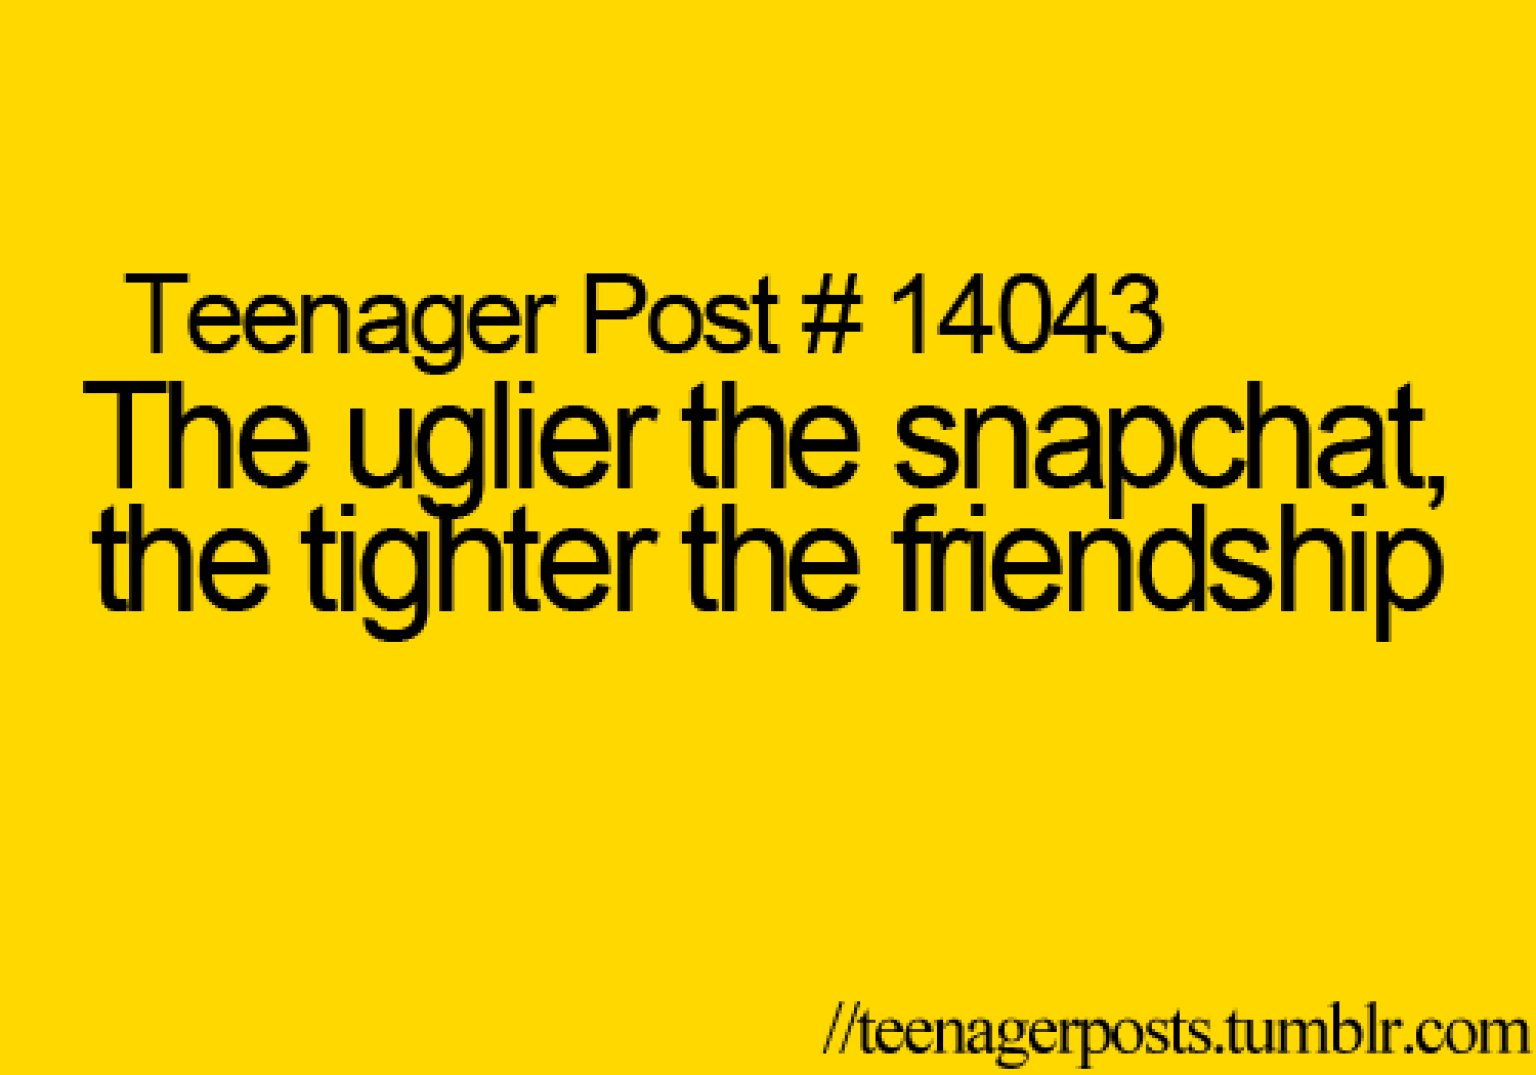 83 best images about teenager posts on Pinterest | That ... |Teenager Post About Friendship